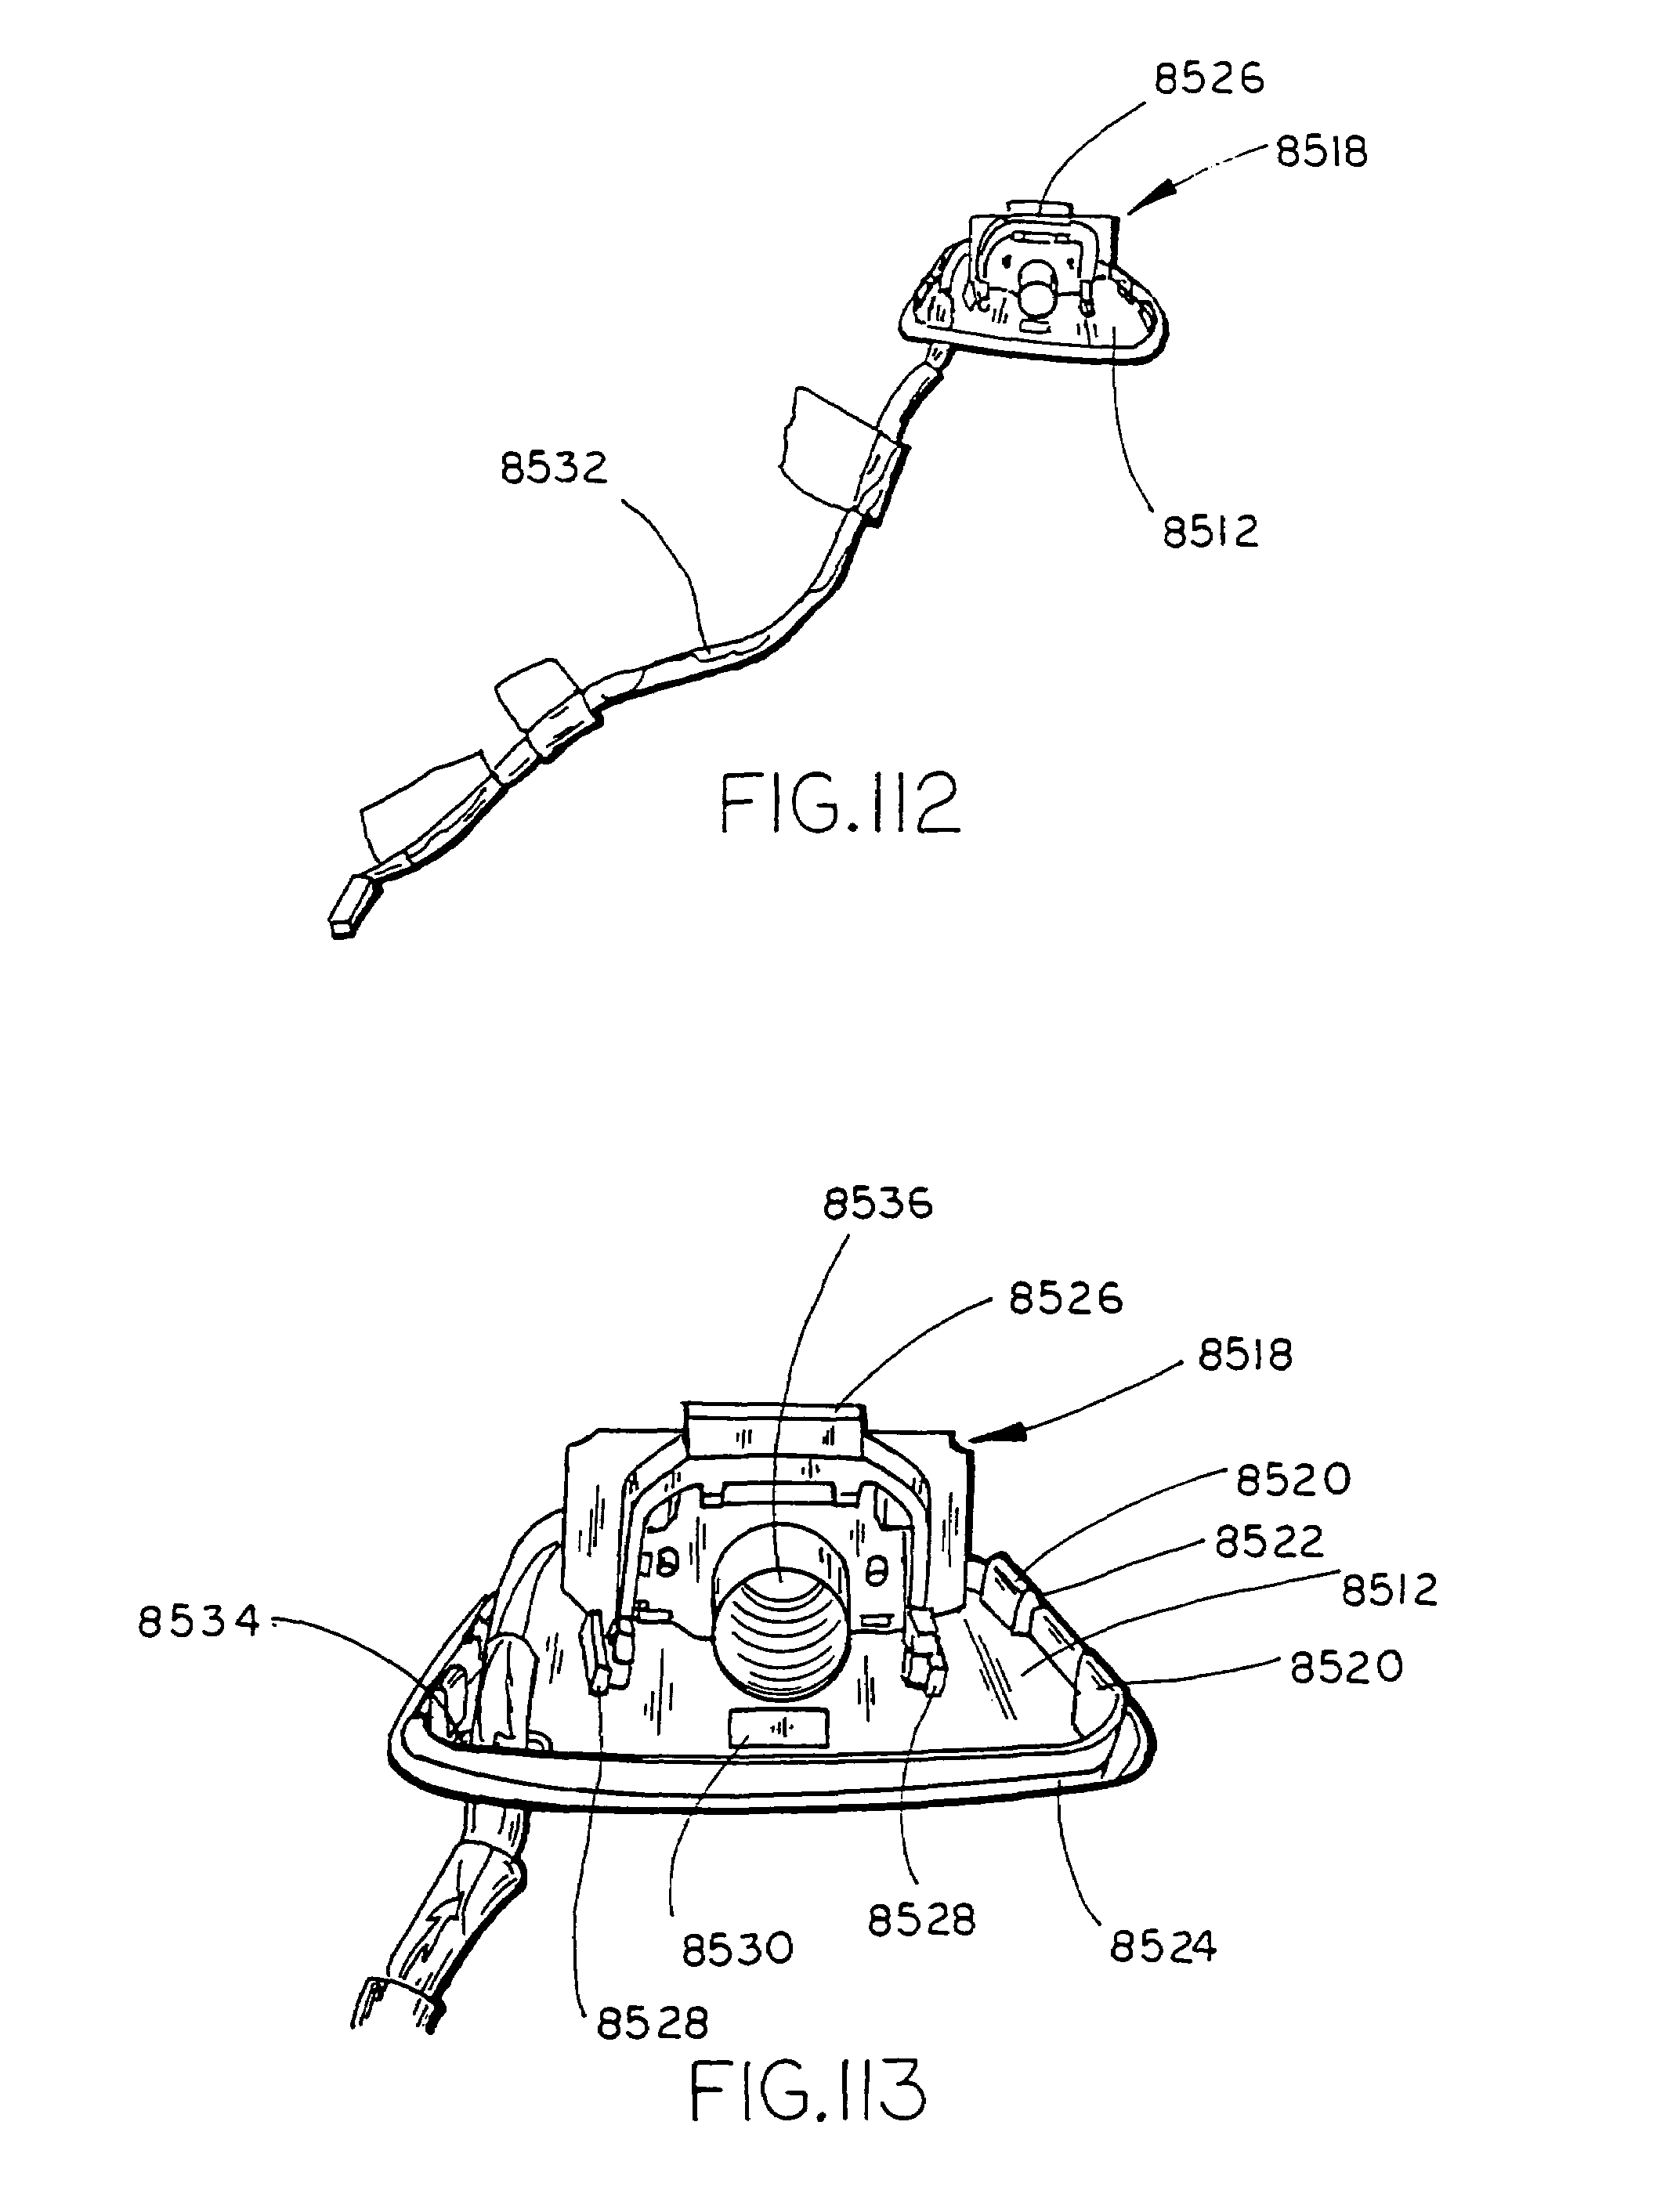 Patent Us 7446650 B2 Automatic Stick Shift Circuit For Vw Type 1 Sedan 111 And 113 From